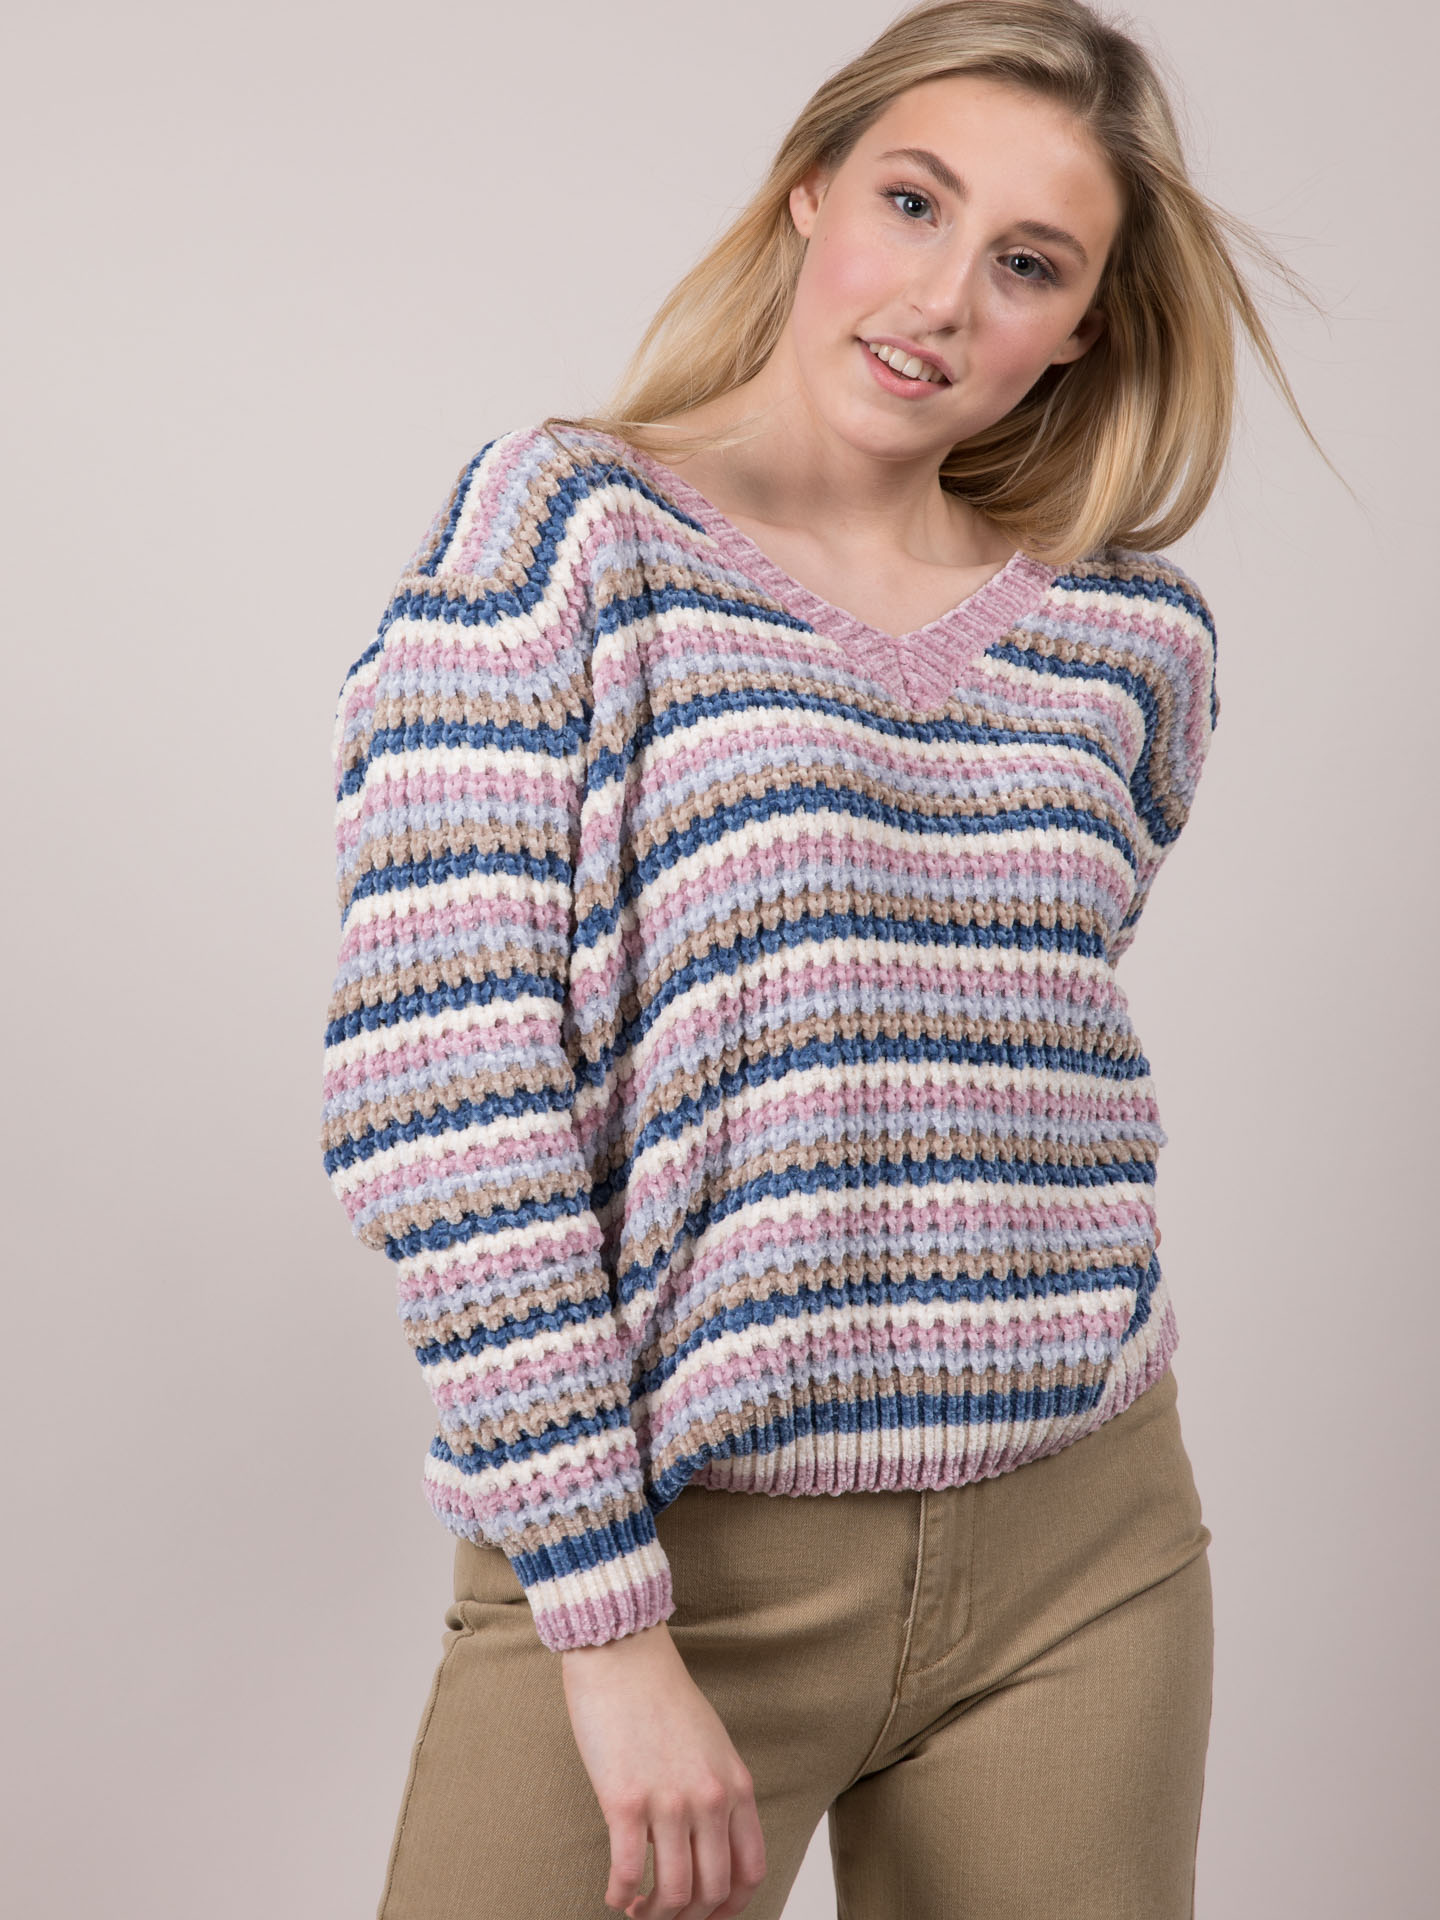 Soft Knit Pastel Striped Carol Sweater